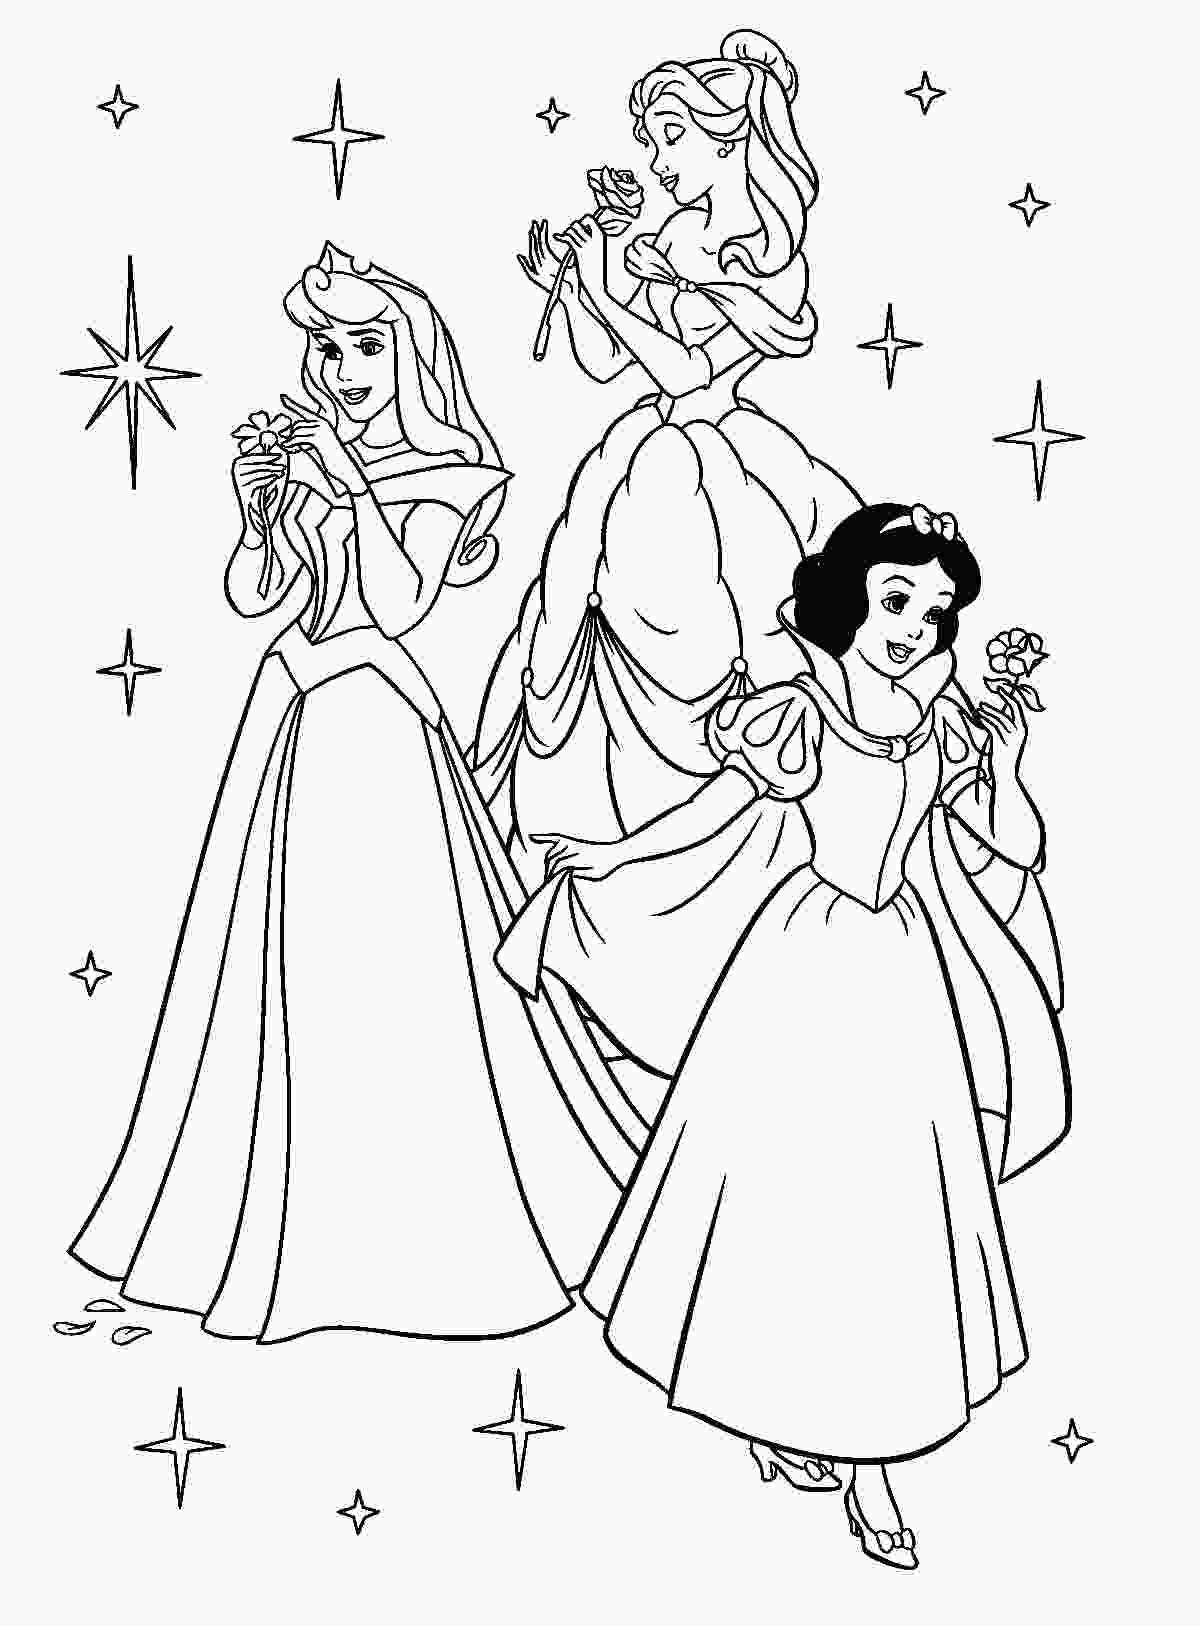 cute princess coloring pages cute disney princess coloring pages for girls in 2020 coloring princess cute pages